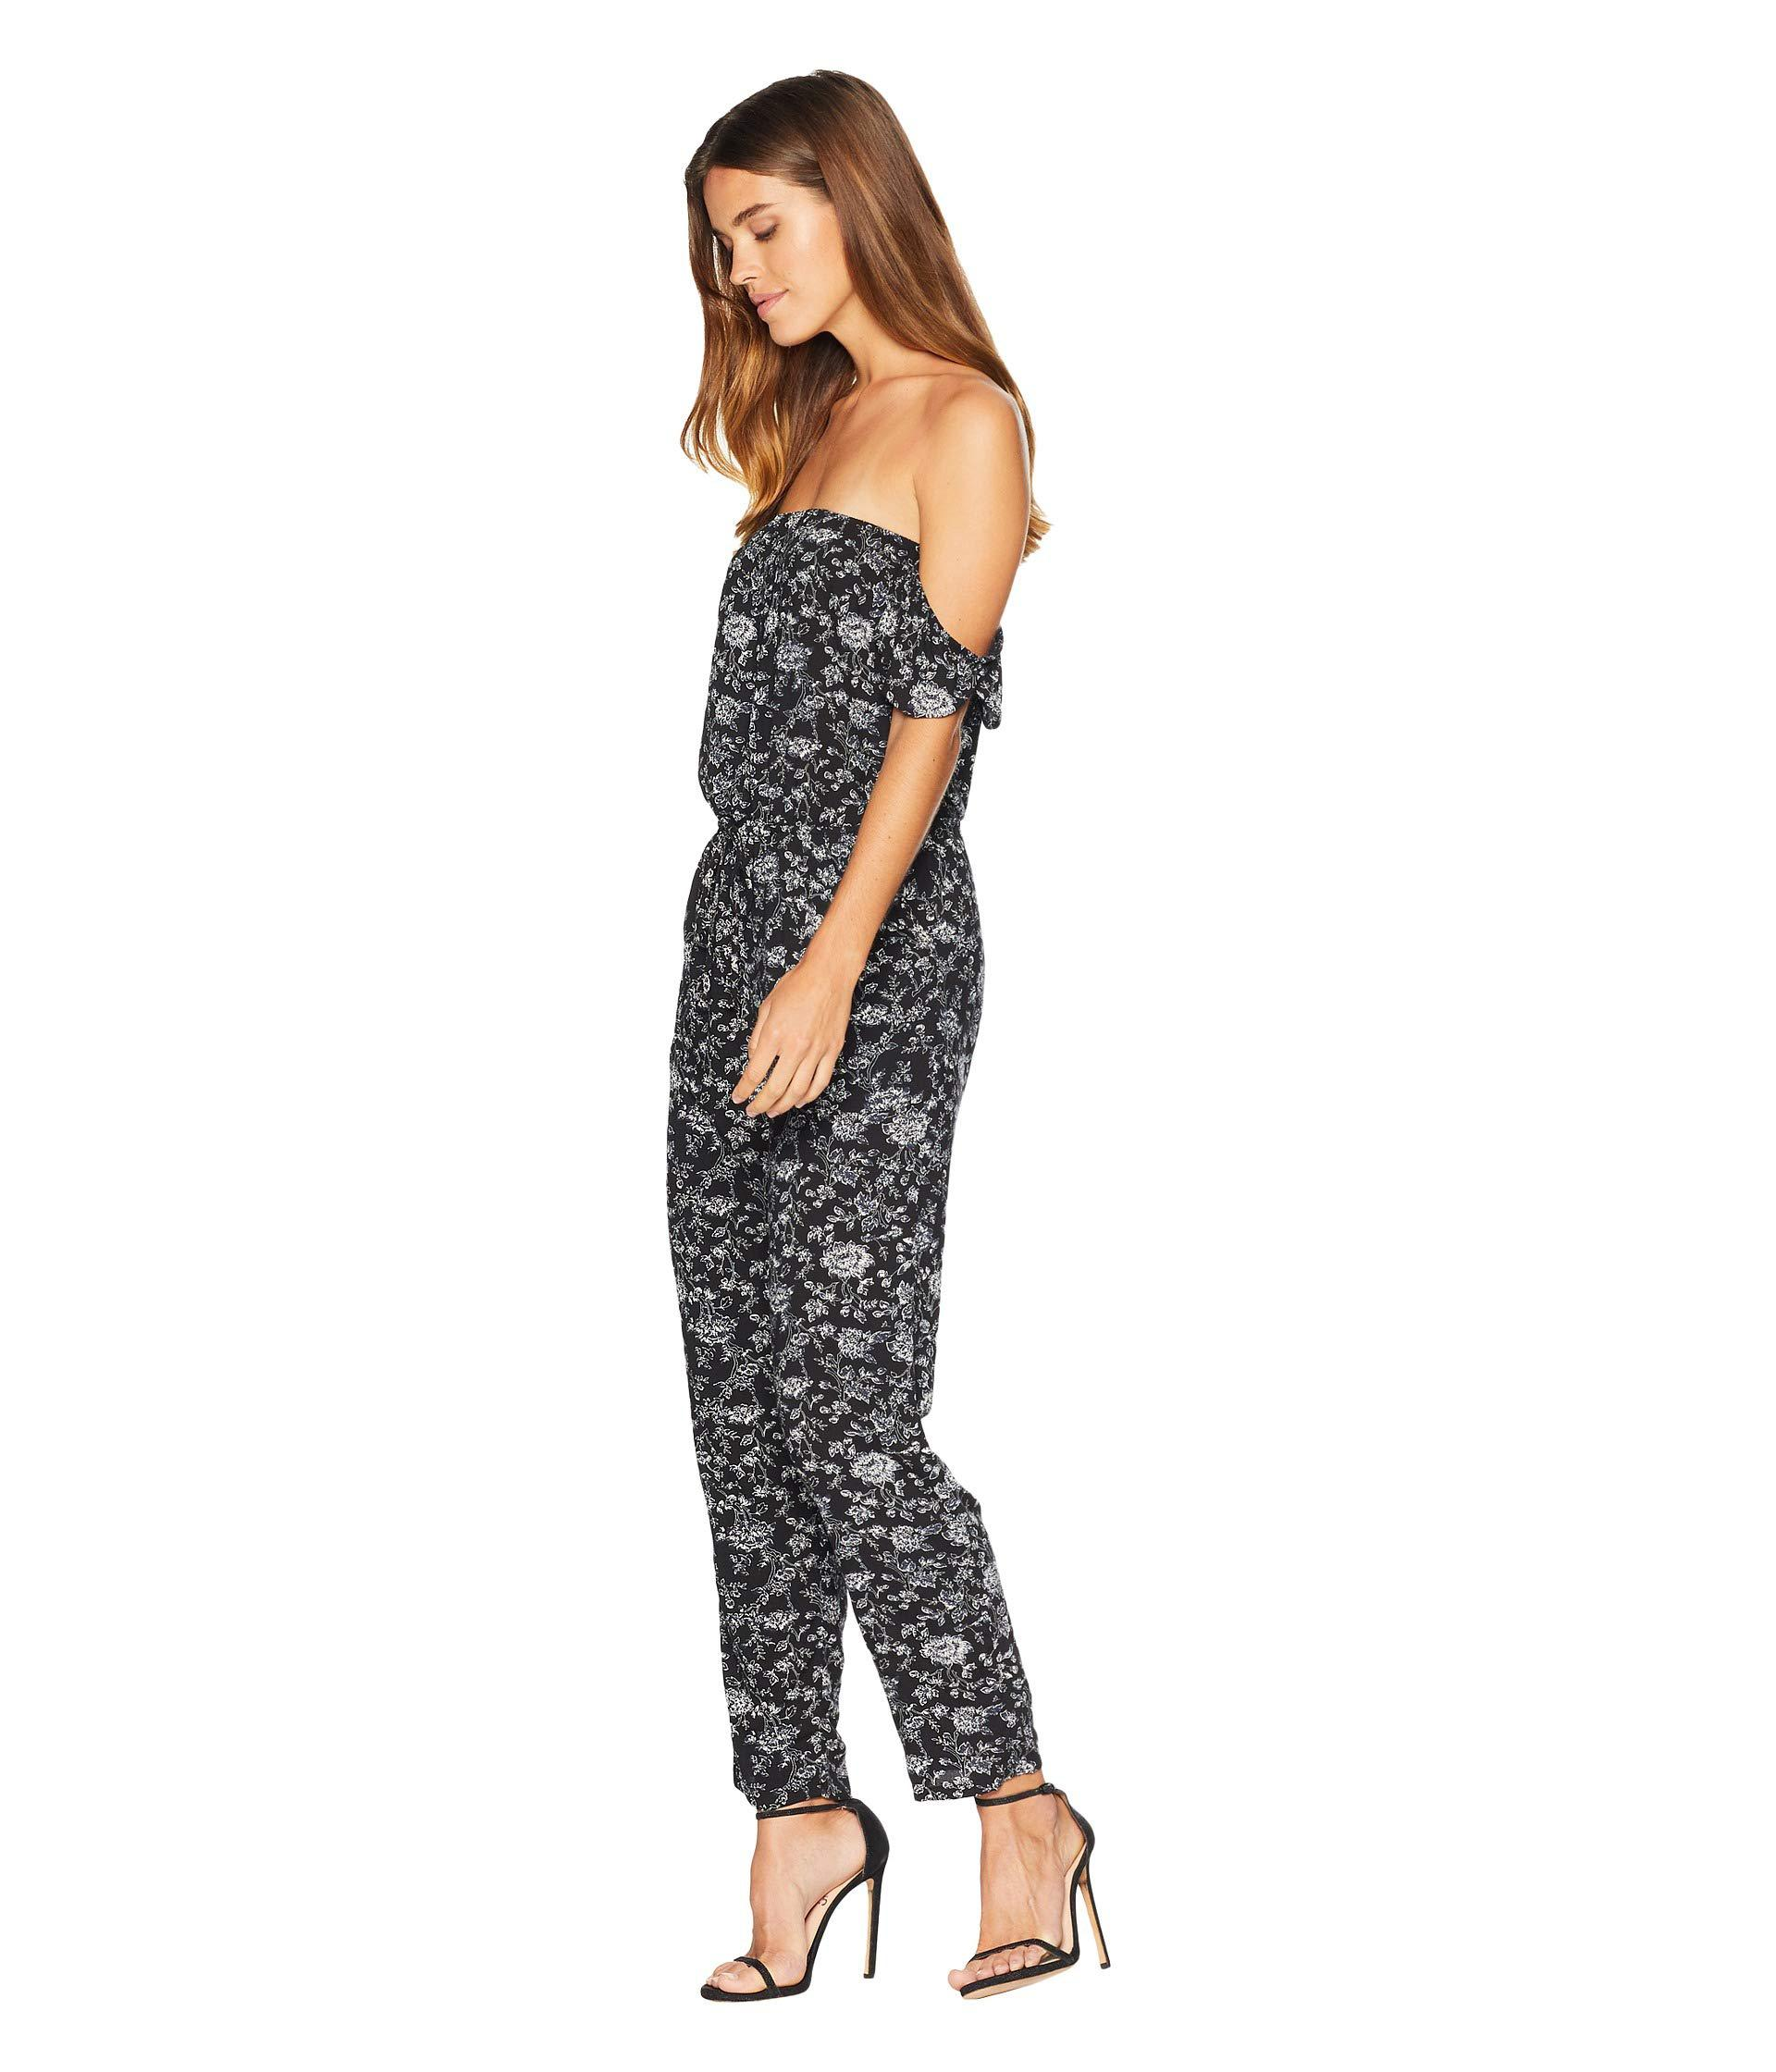 a00d5a064fc Lyst - Lucy Love Malibu Ranch Jumpsuit in Black - Save 49%